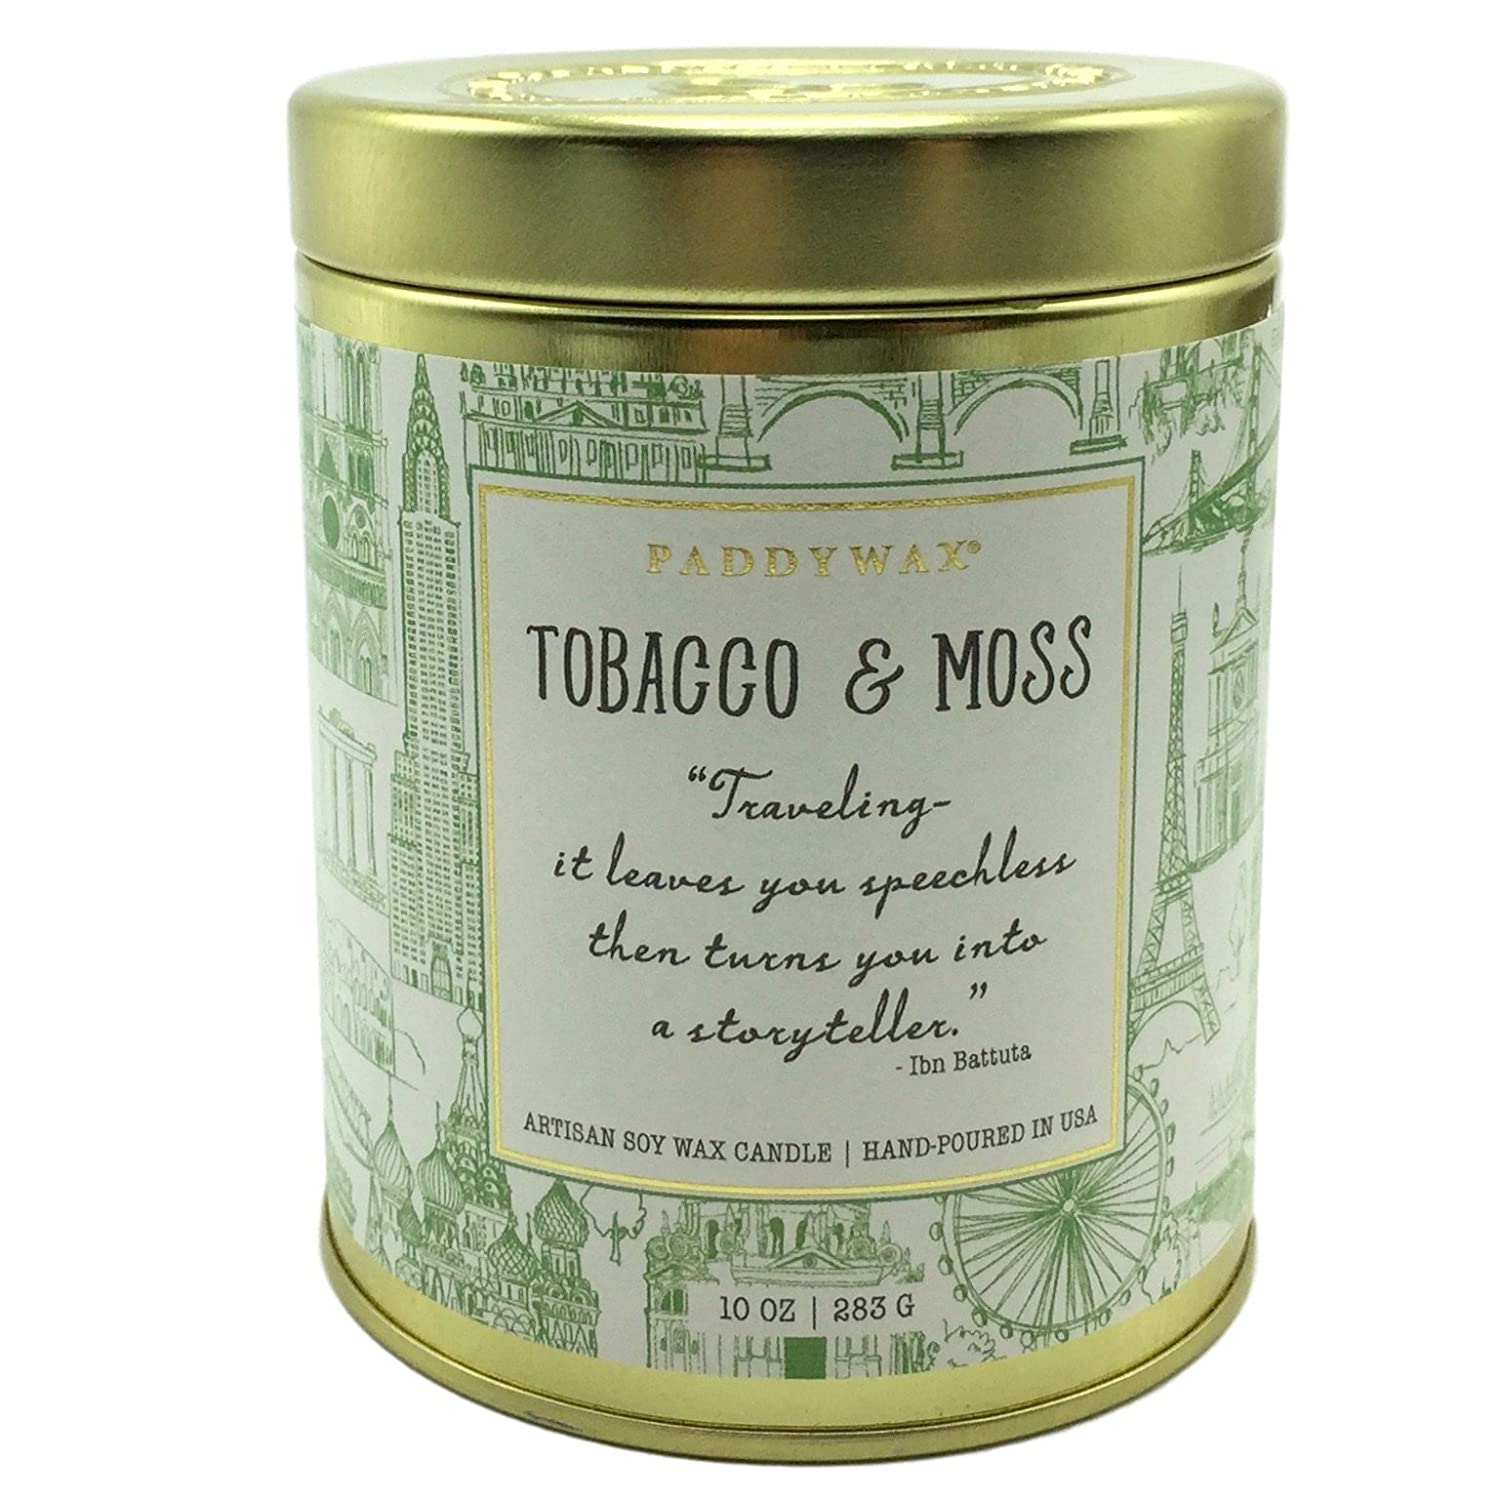 Paddywax Tobacco & Moss Soy Wax Candle In Decorative Tin Depicting Landmarks from Around The World